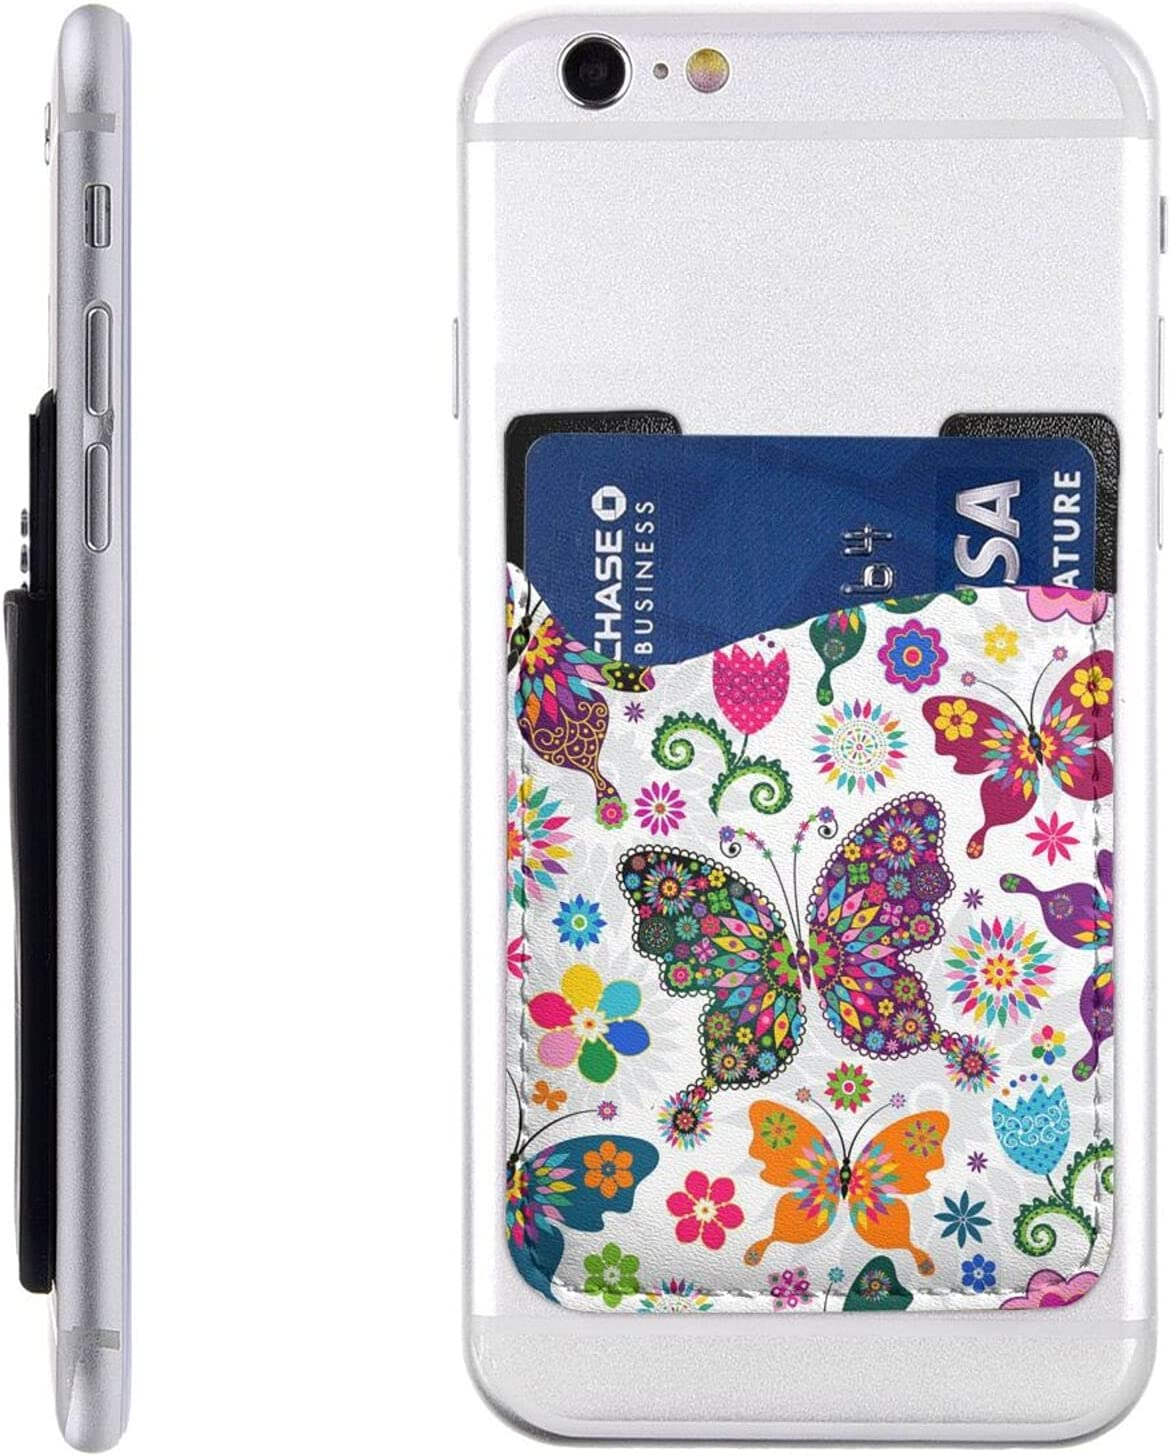 Colorful Very Minneapolis Mall popular Butterflies and Flowers Phone Cell Holder St Card